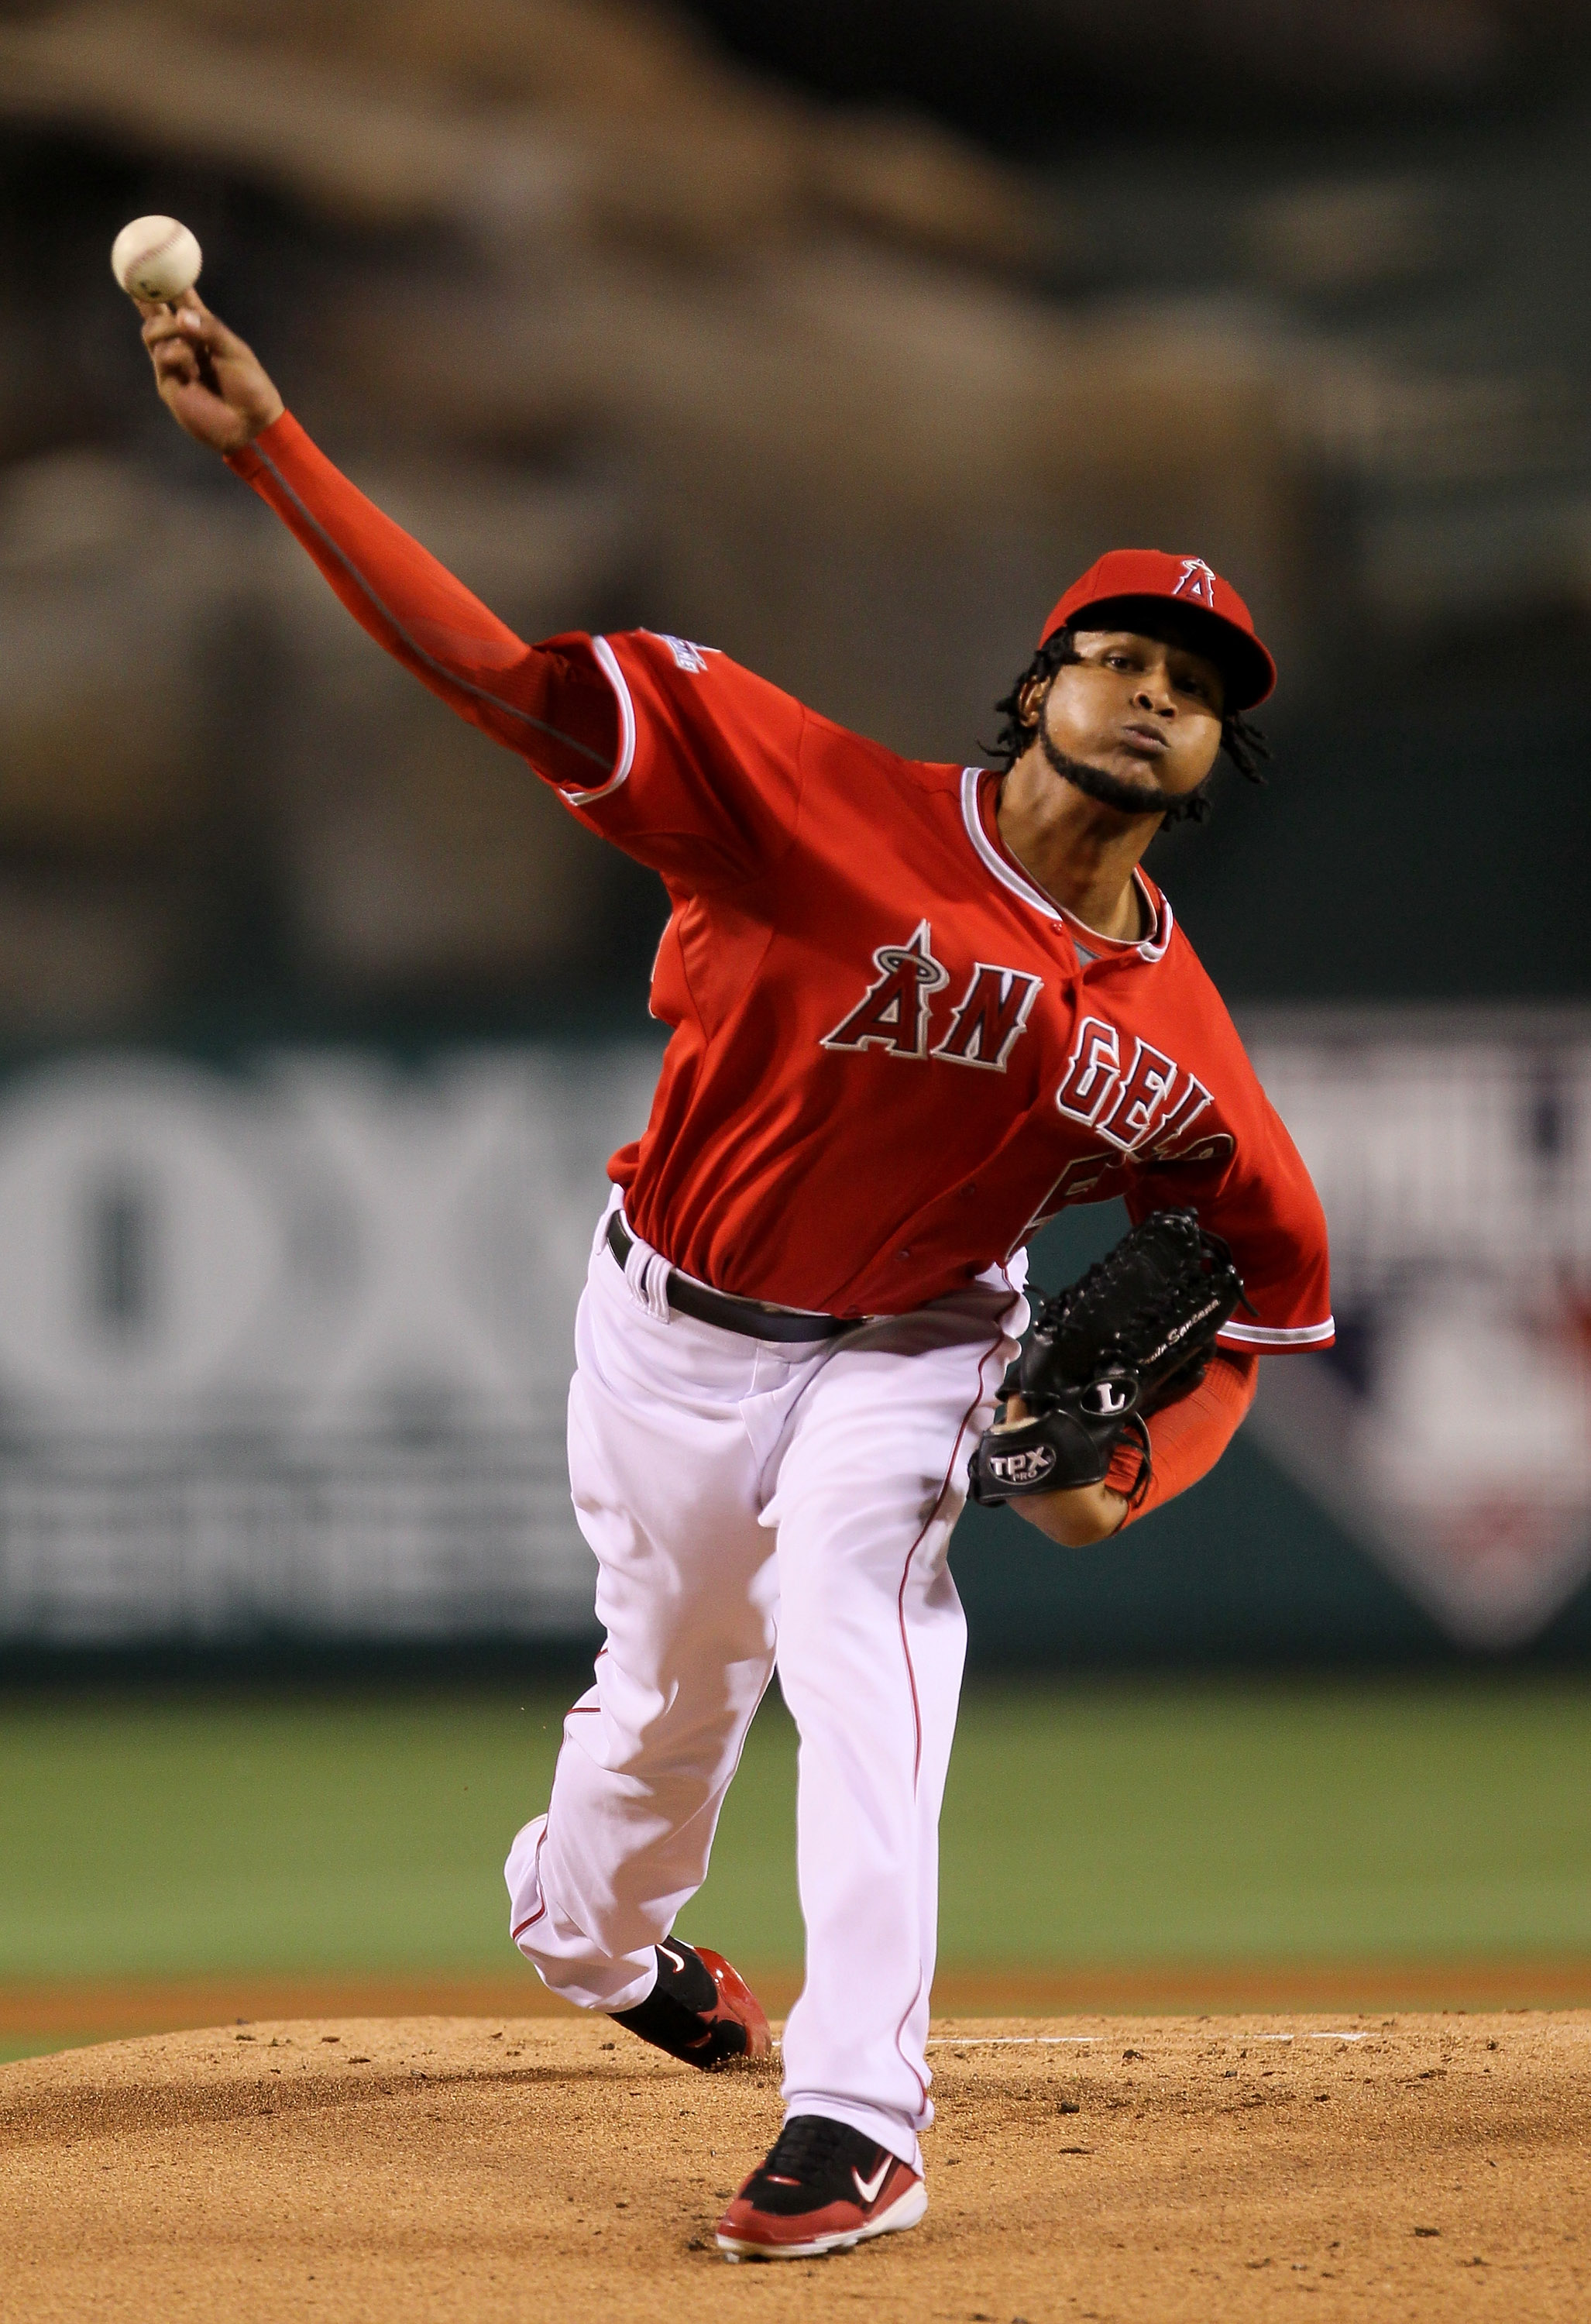 ANAHEIM, CA - SEPTEMBER 21:  Ervin Santana #54 of the Los Angeles Angels of Anaheim throws a pitch against the Texas Rangers on September 21, 2010 at Angel Stadium in Anaheim, California.  (Photo by Stephen Dunn/Getty Images)